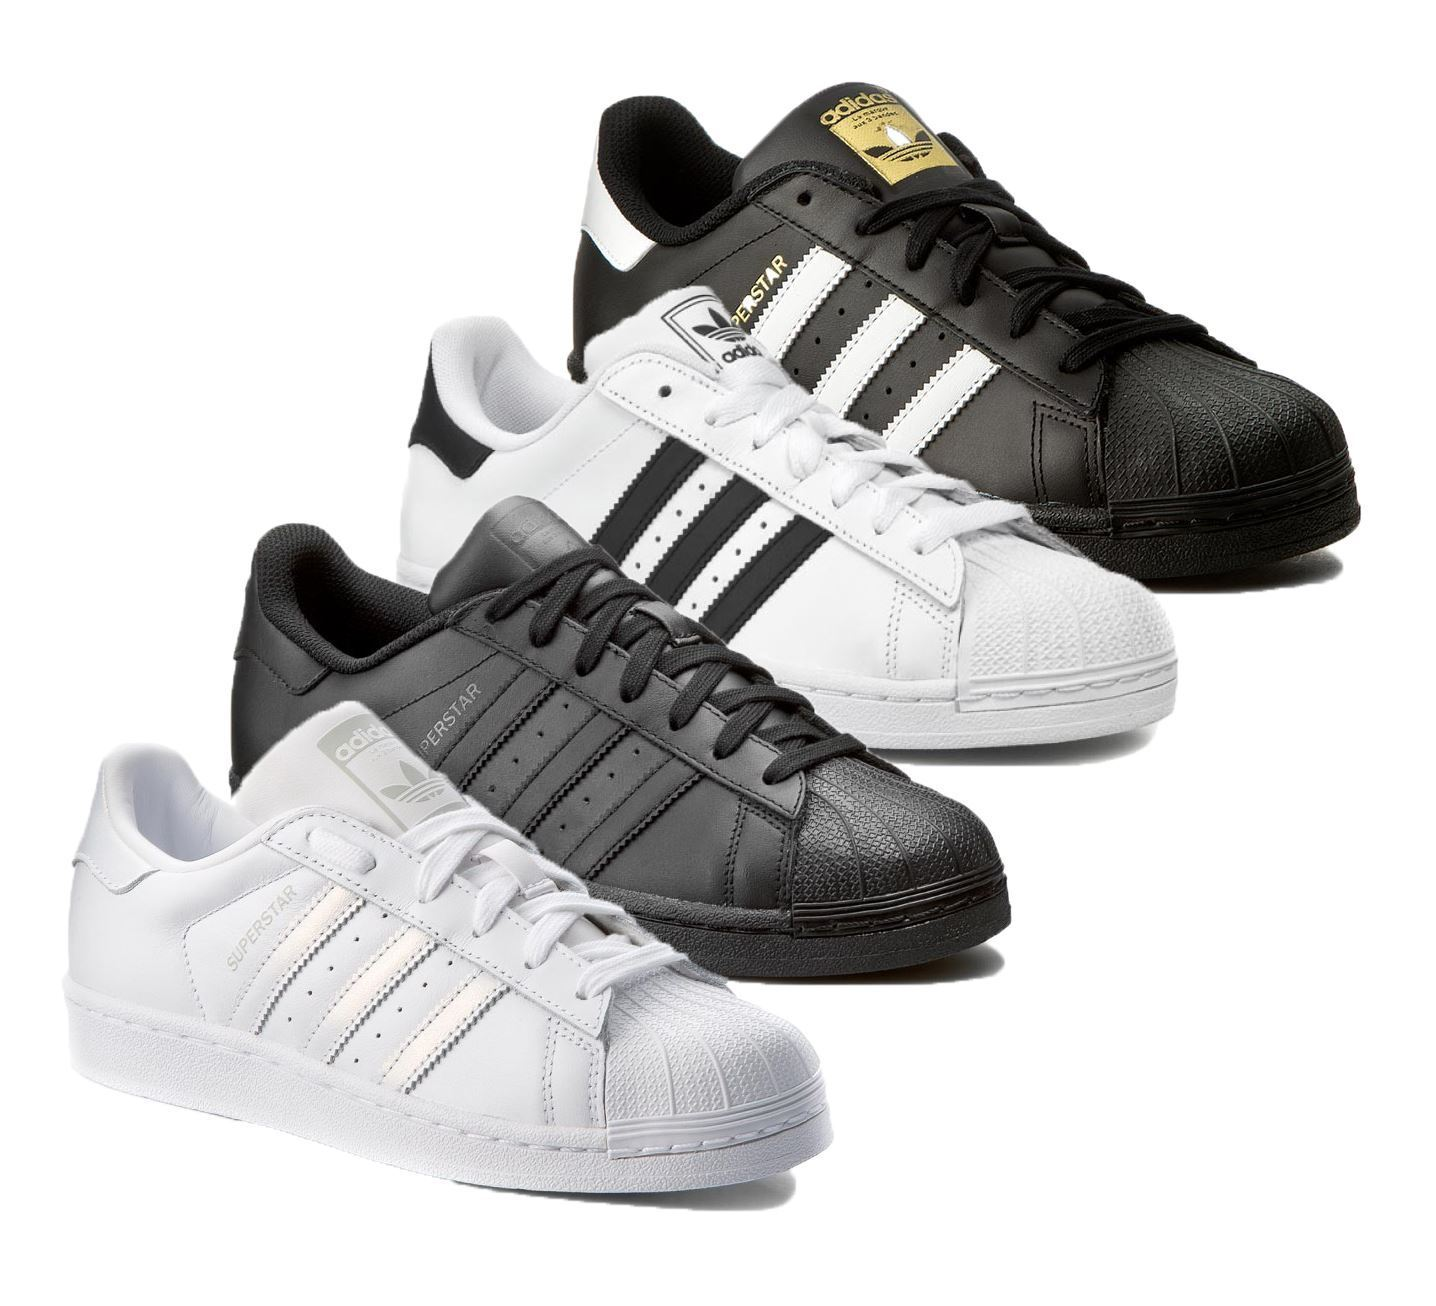 Adidas Originals Mens Superstar New Leather Trainers Sports Sneakers